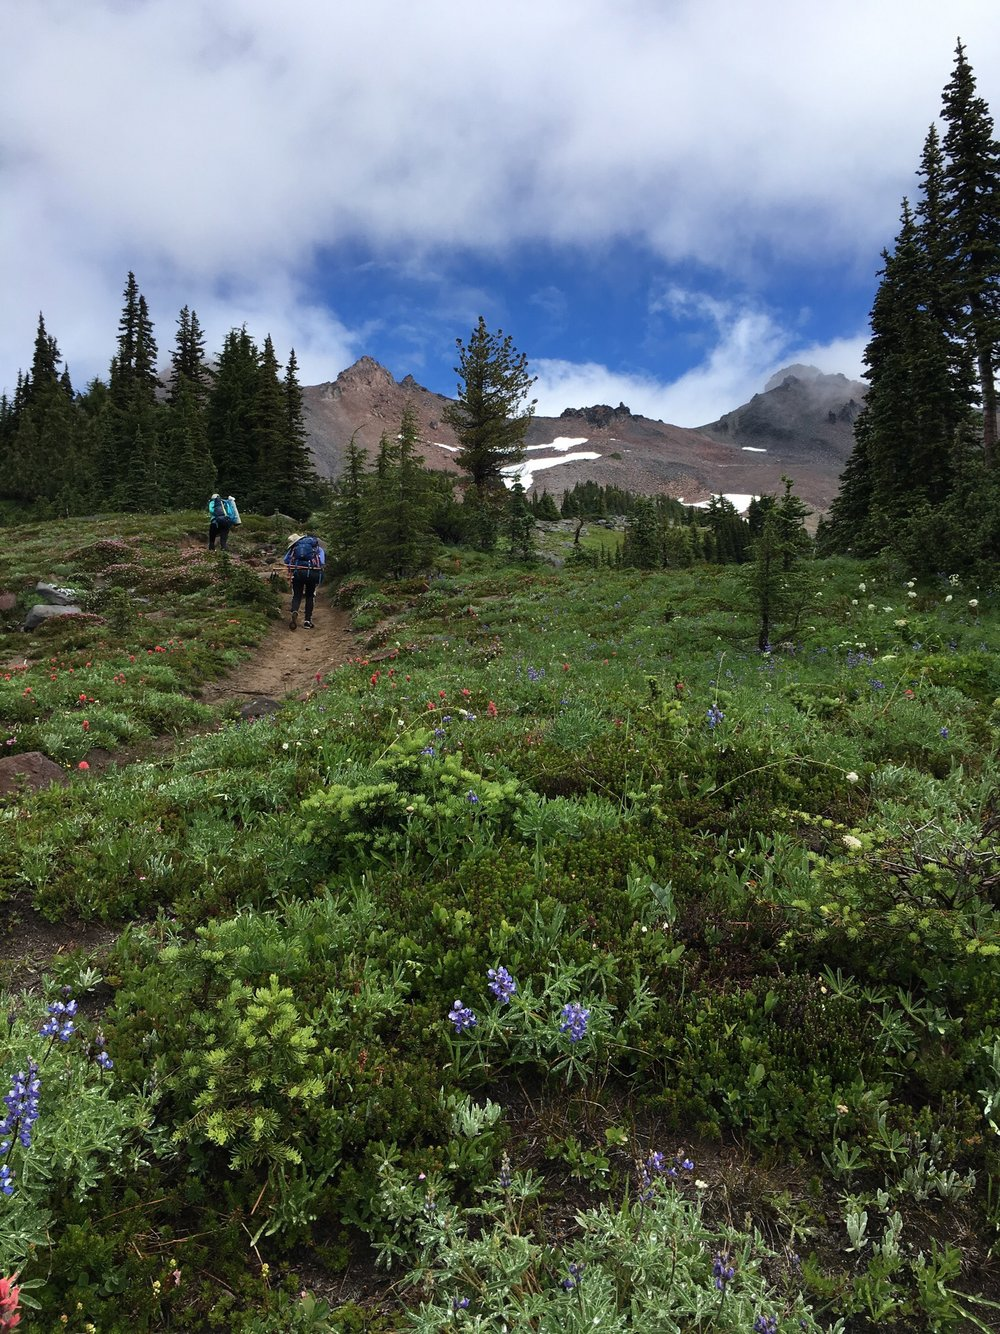 A picture Kris took whilst backpacking with some friends in Camas, Washington last summer.